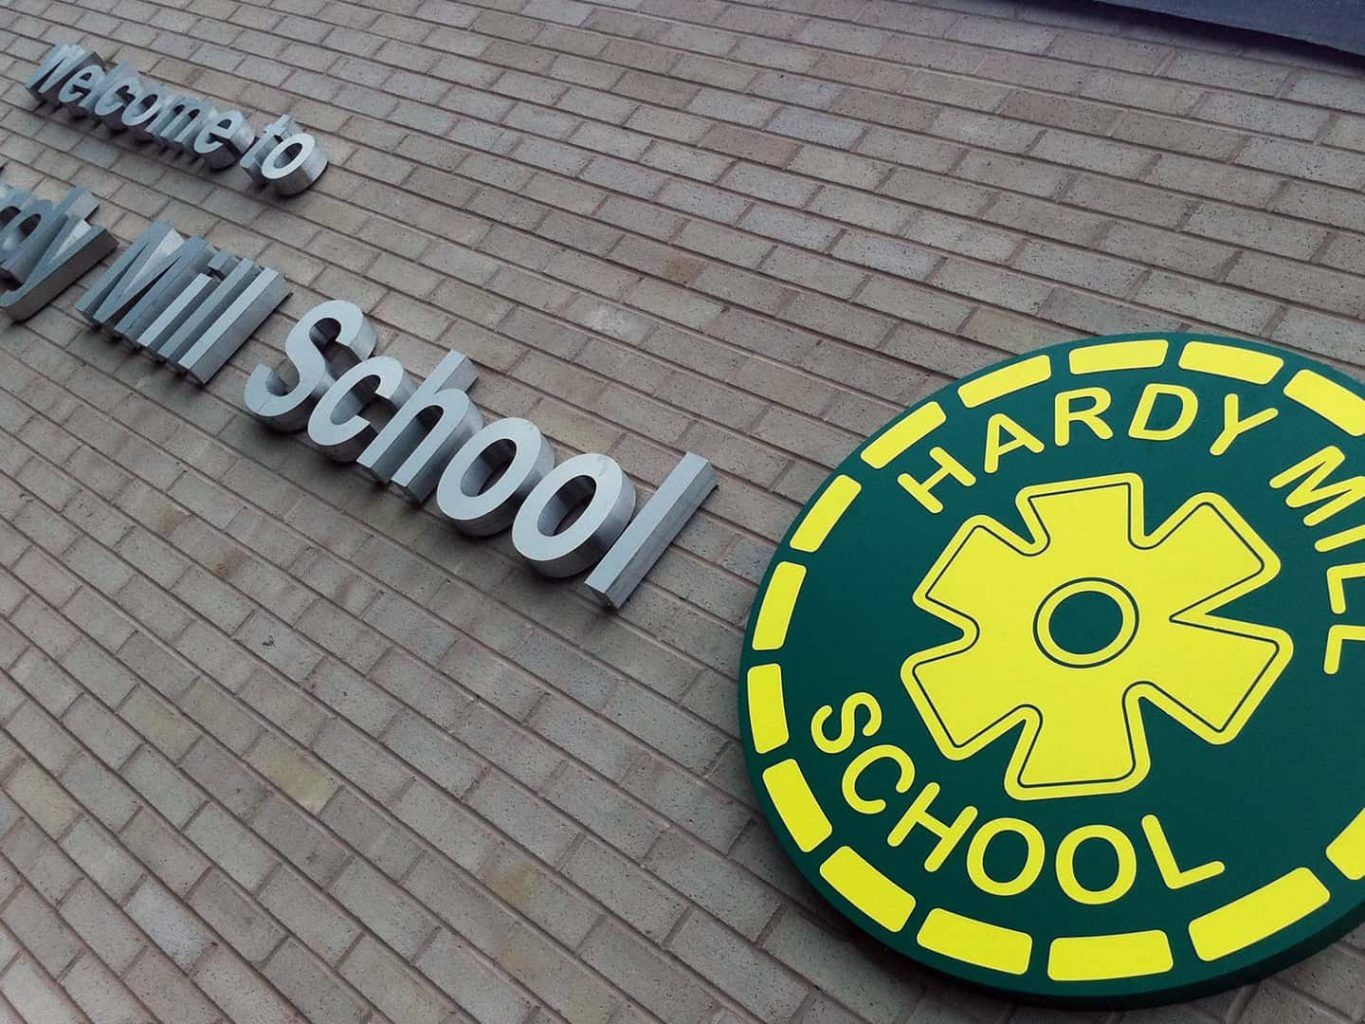 Hardy Mil School - Built Up Lettering